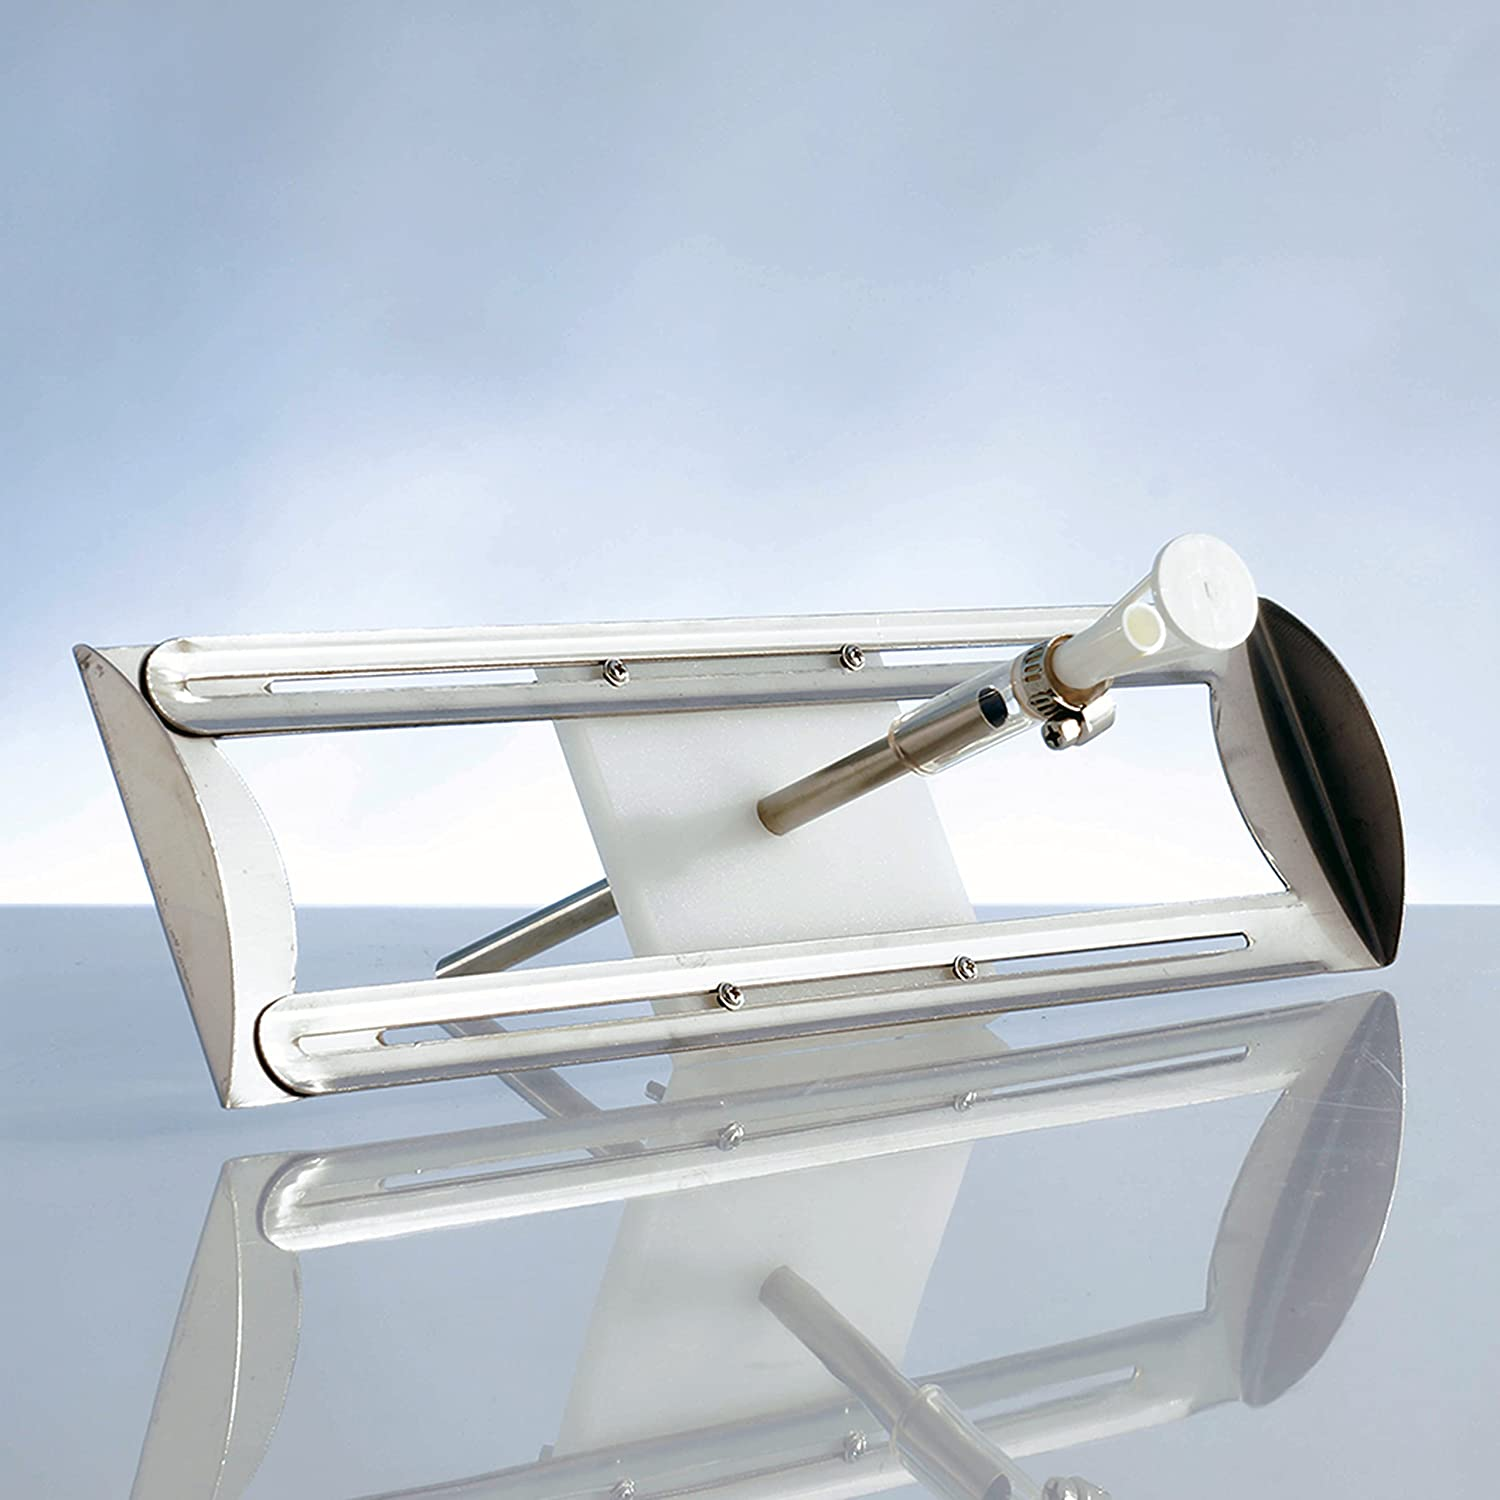 Adjustable Width For All Grain Home Brewing On Any Mash Tun Imperial Sparge Stainless Steel Arm